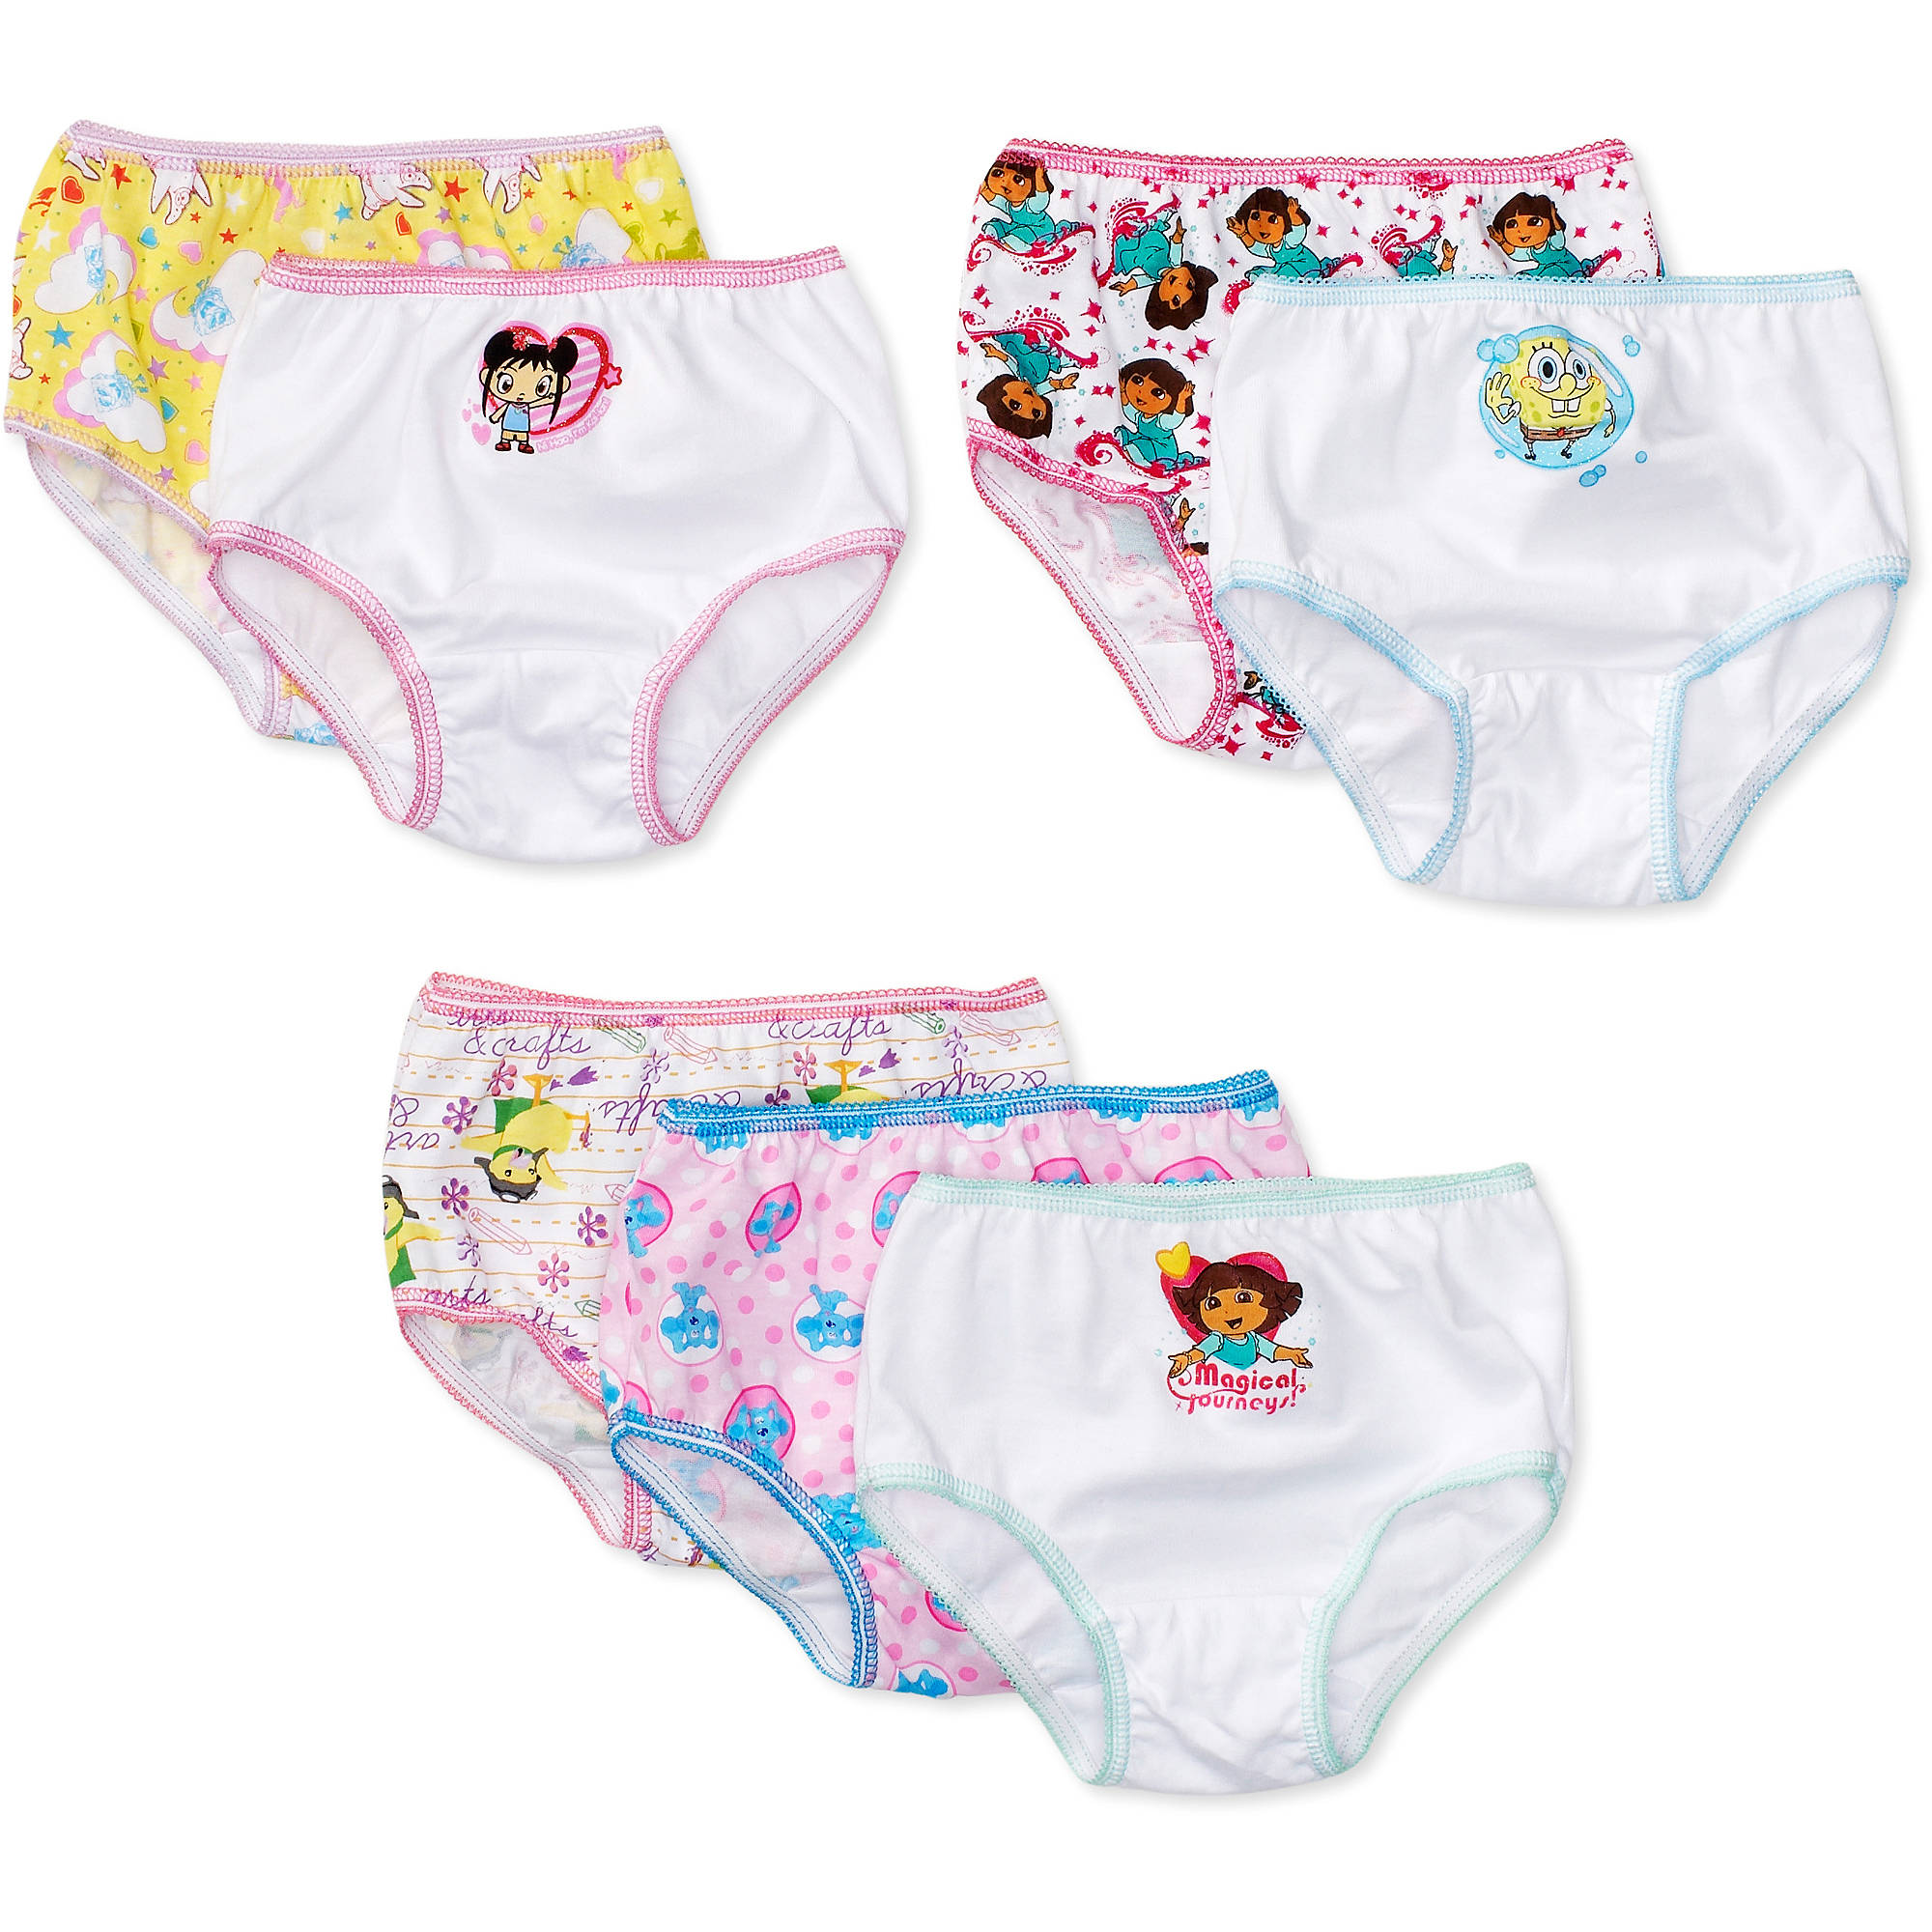 Nickelodeon Toddler Girl Favorite Characters Underwear, 7-Pack